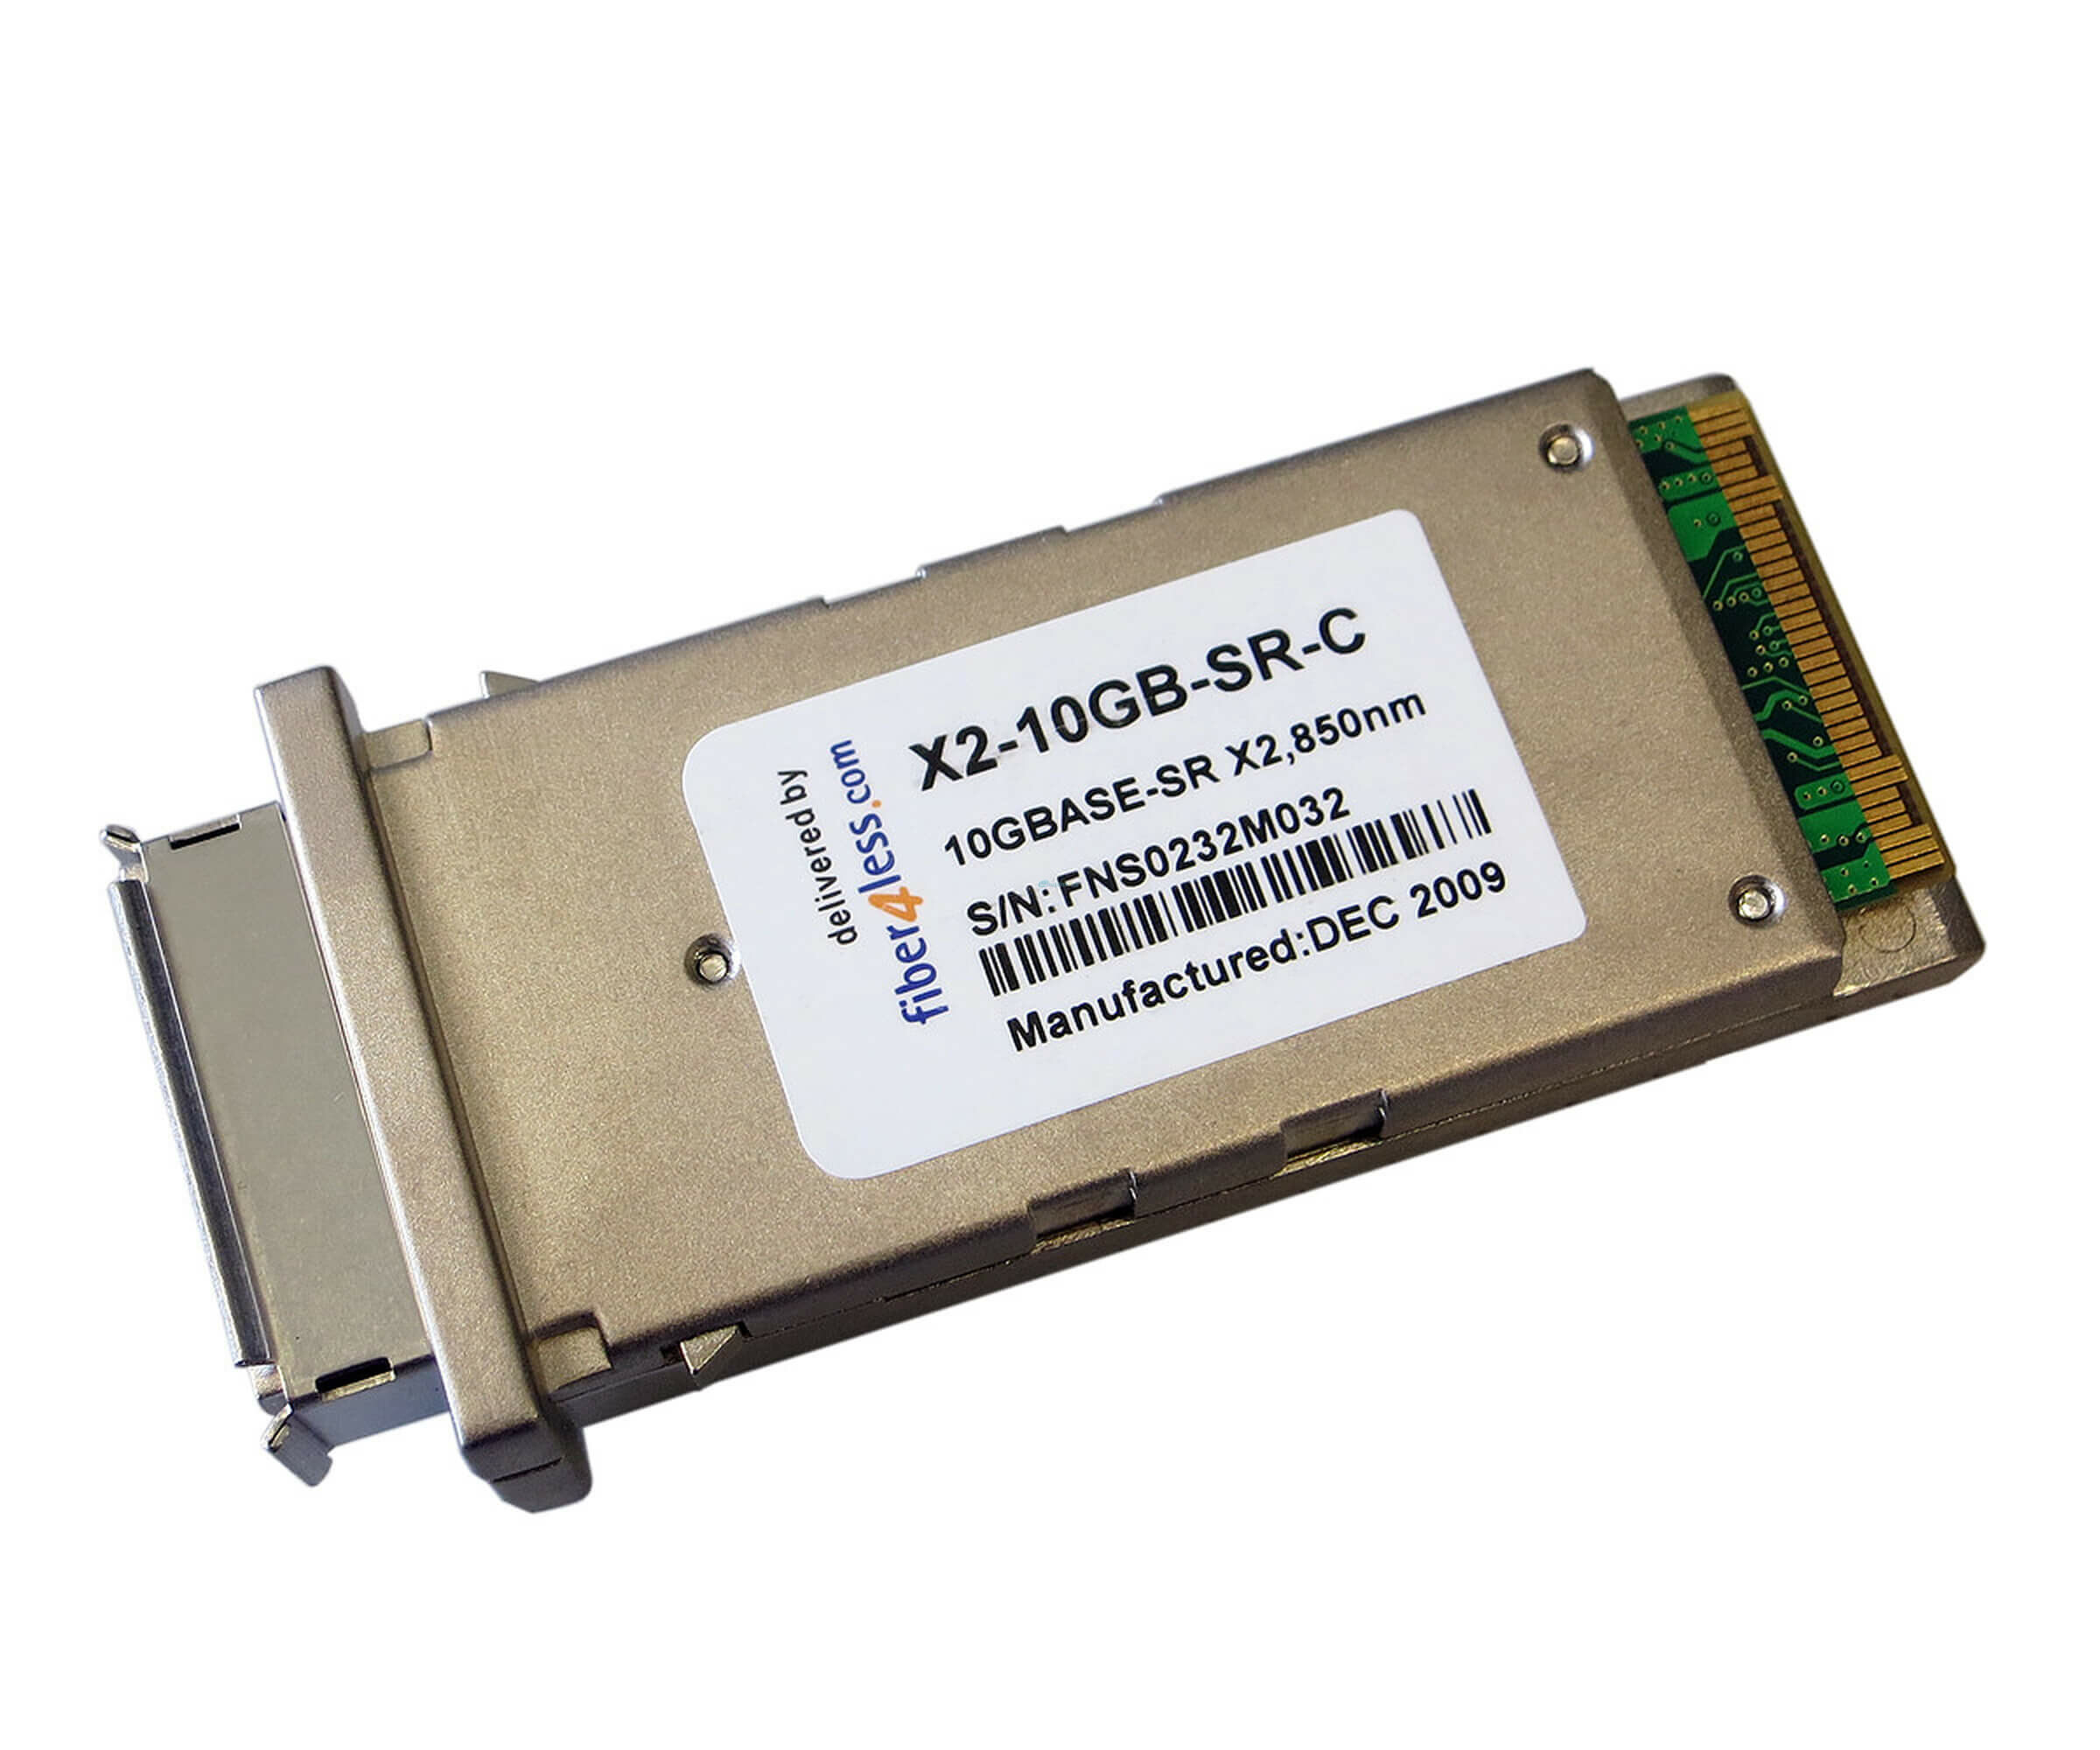 Cisco X2-10GB-SR-C - 10GBASE-SR X2 Transceiver Modul